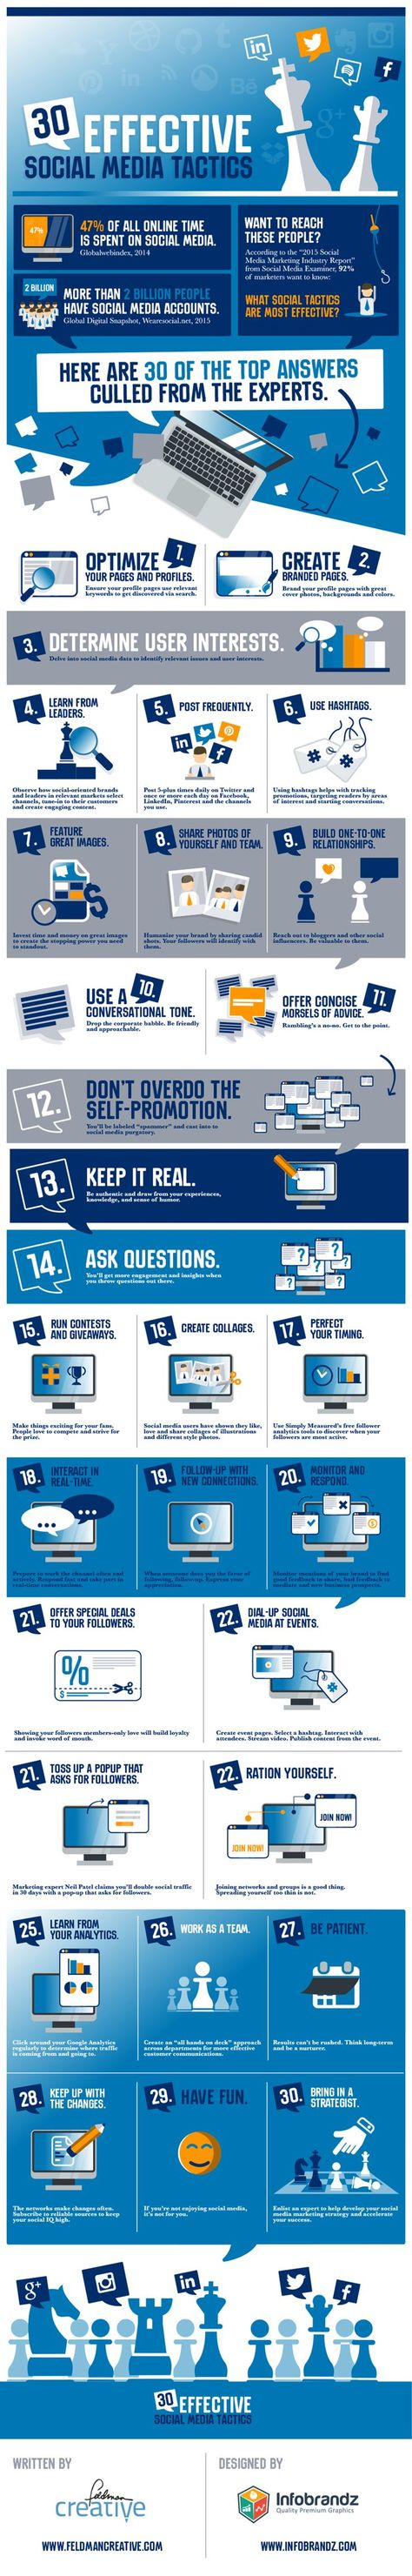 30 effective #SocialMedia tactics worth testing for yourself. Define the role of each social platform uniquely.